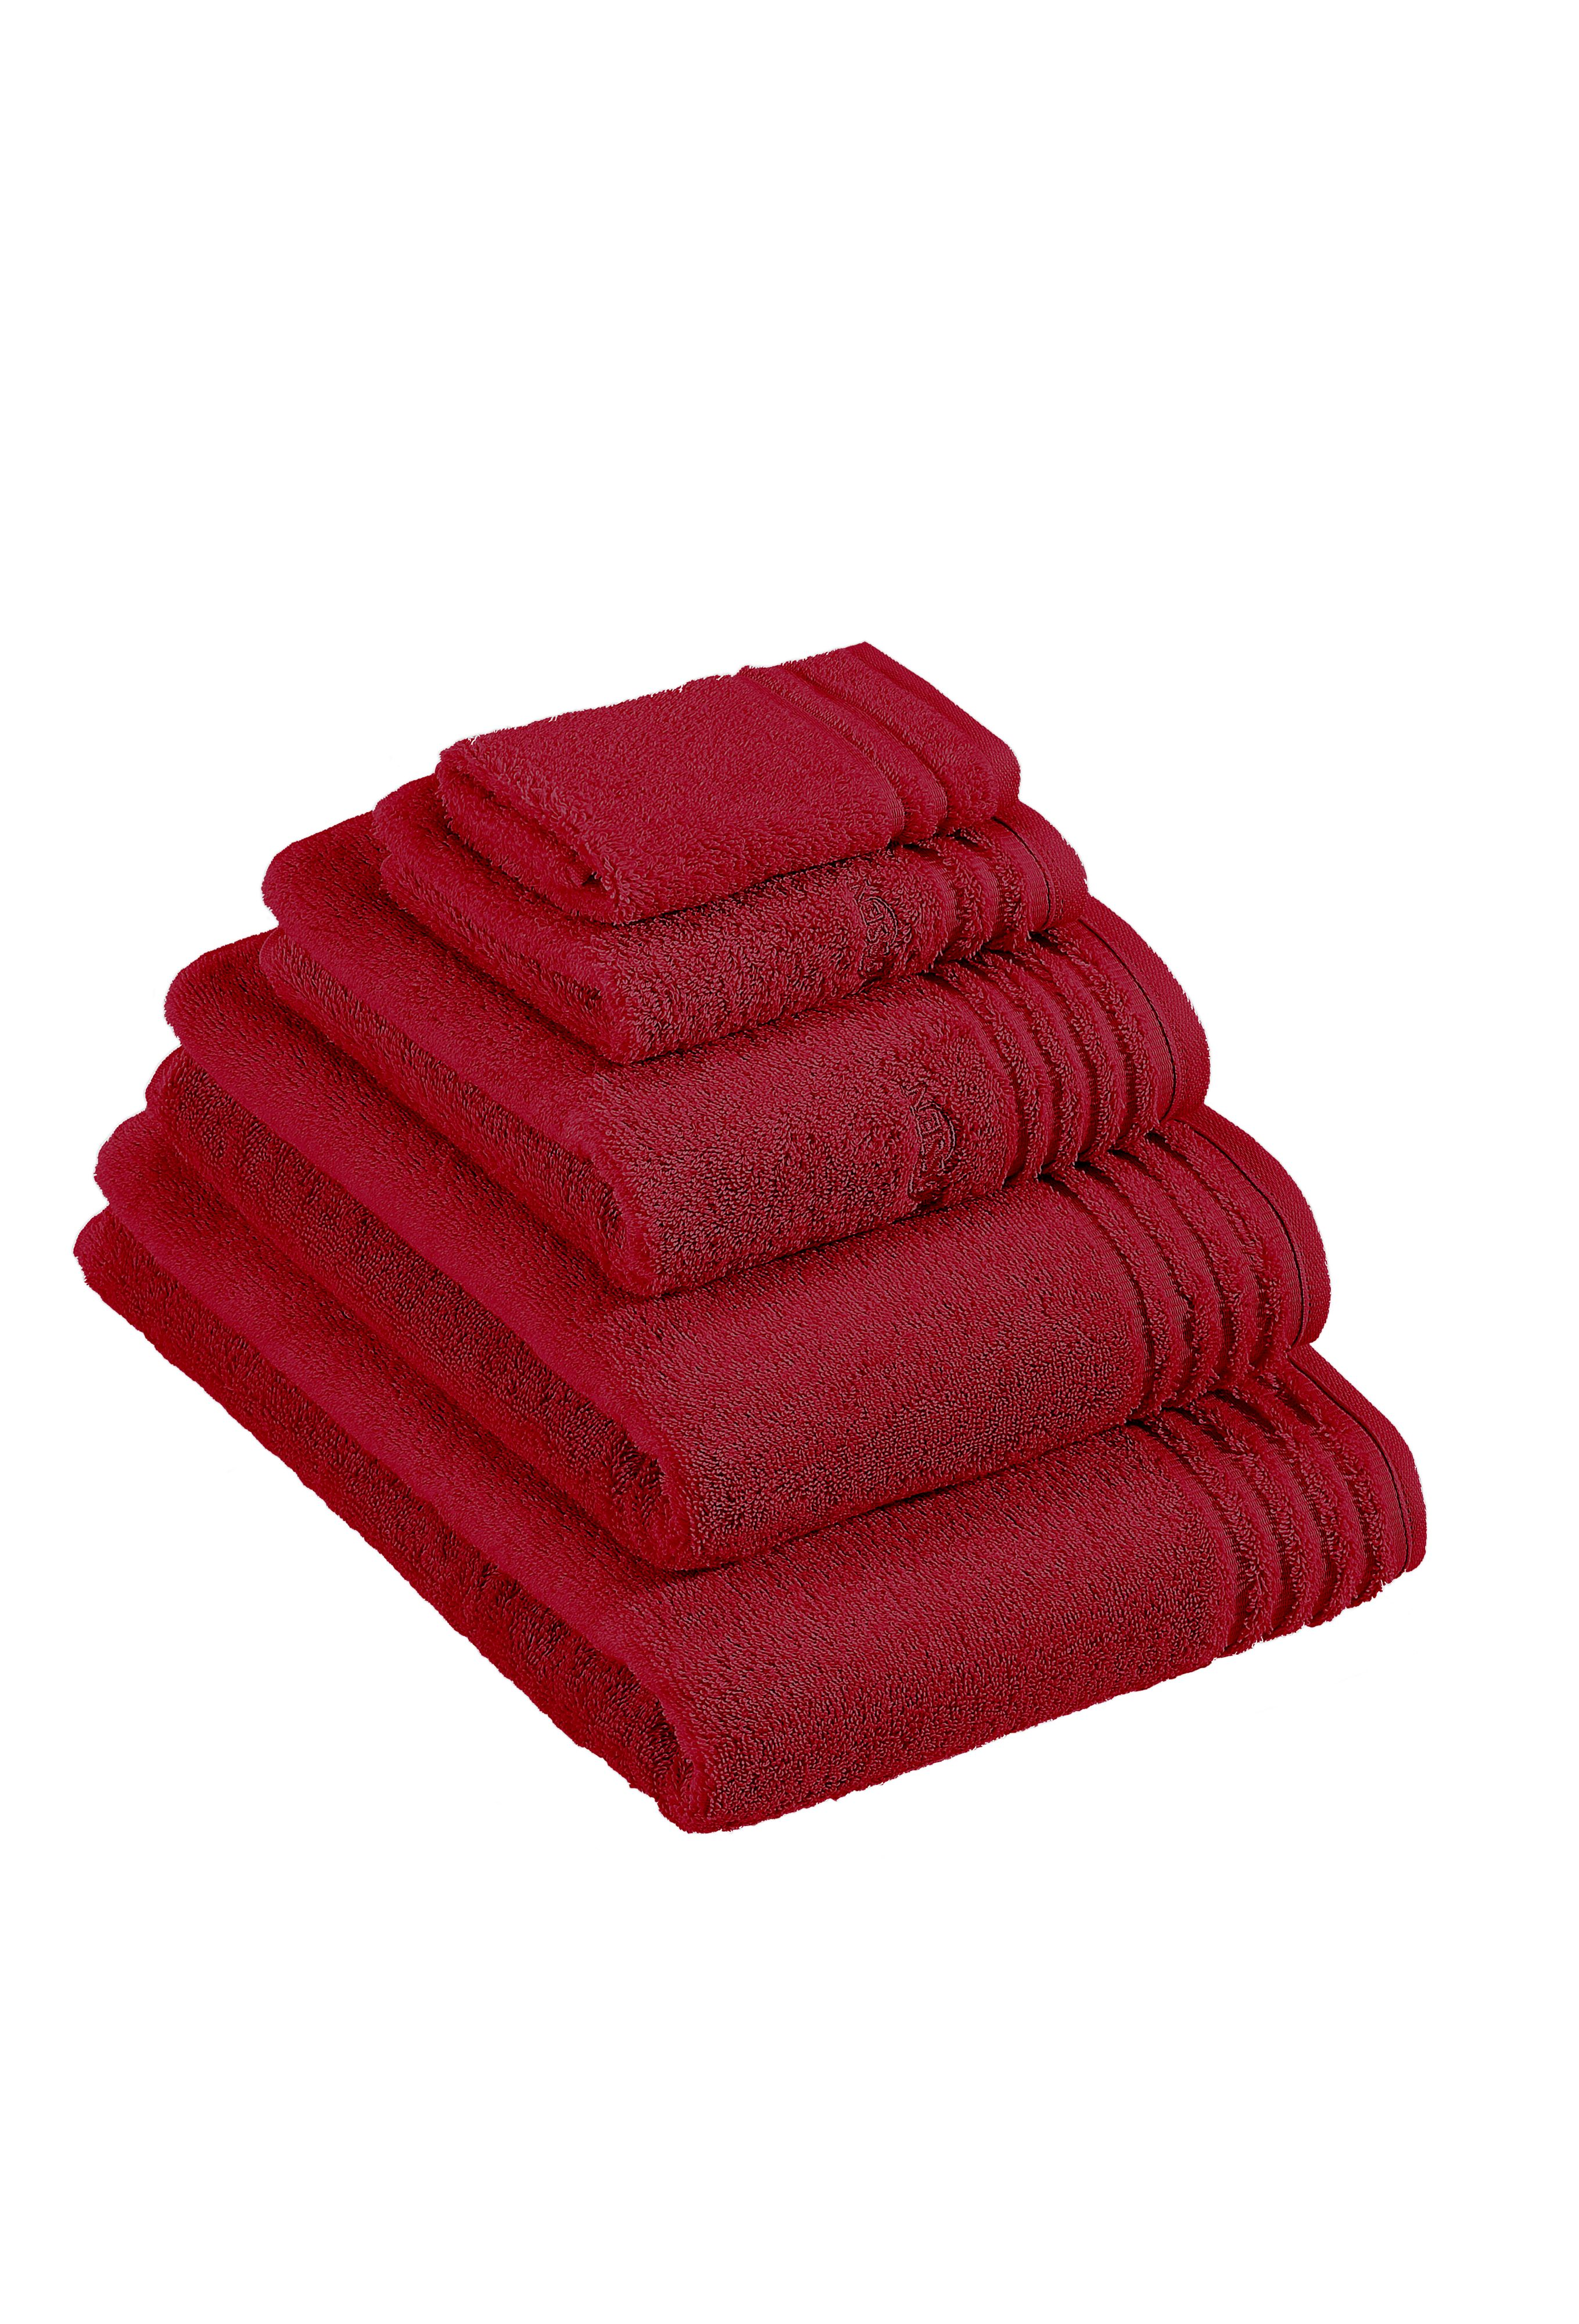 Vienna towel range in rubin